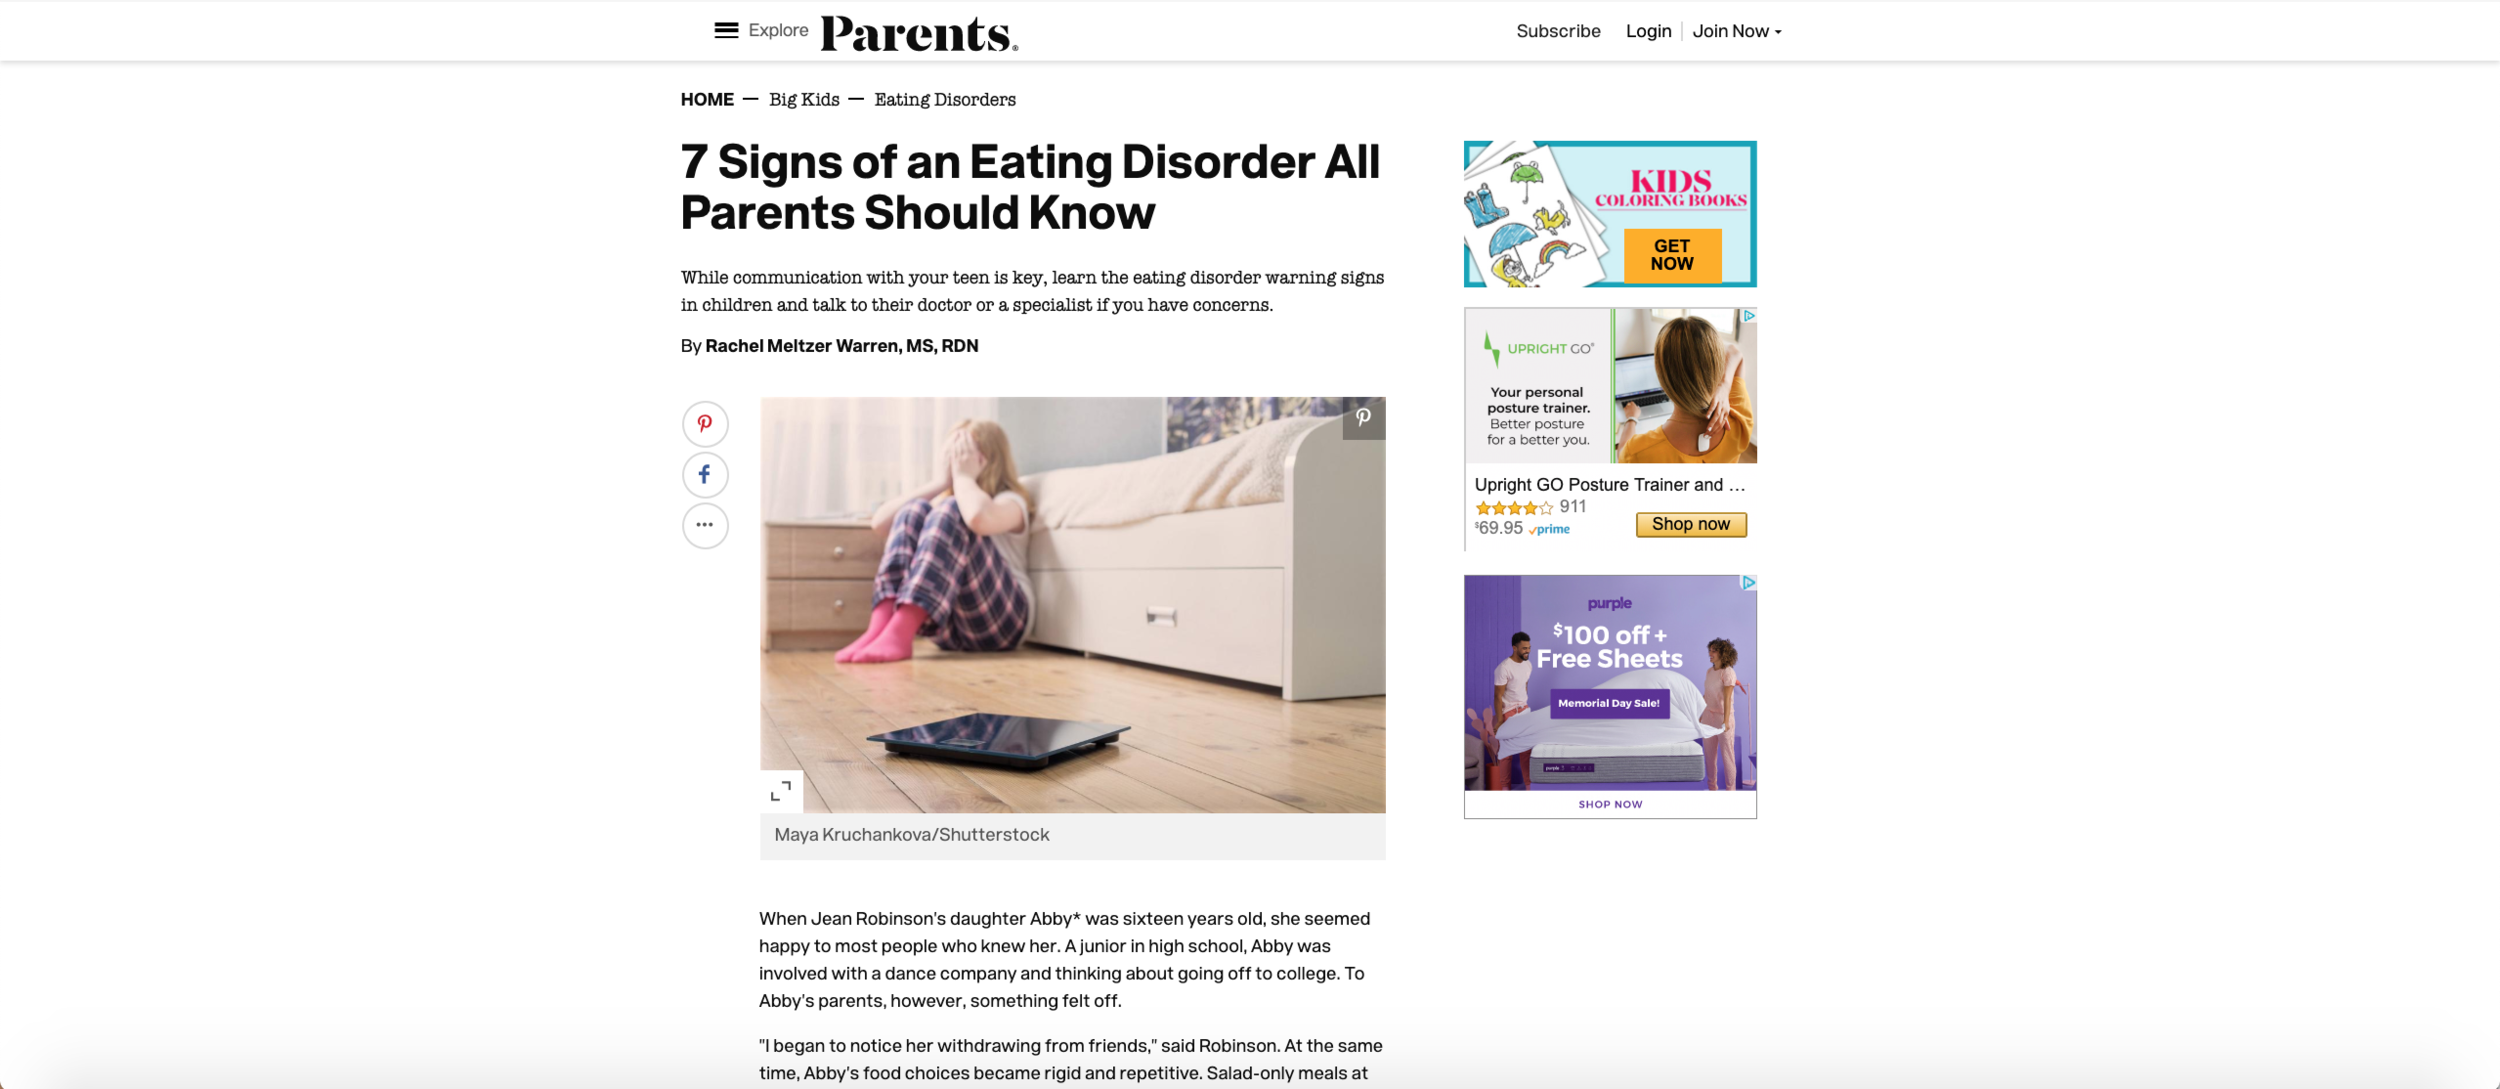 7 Signs of an Eating Disorder All Parents Should Know